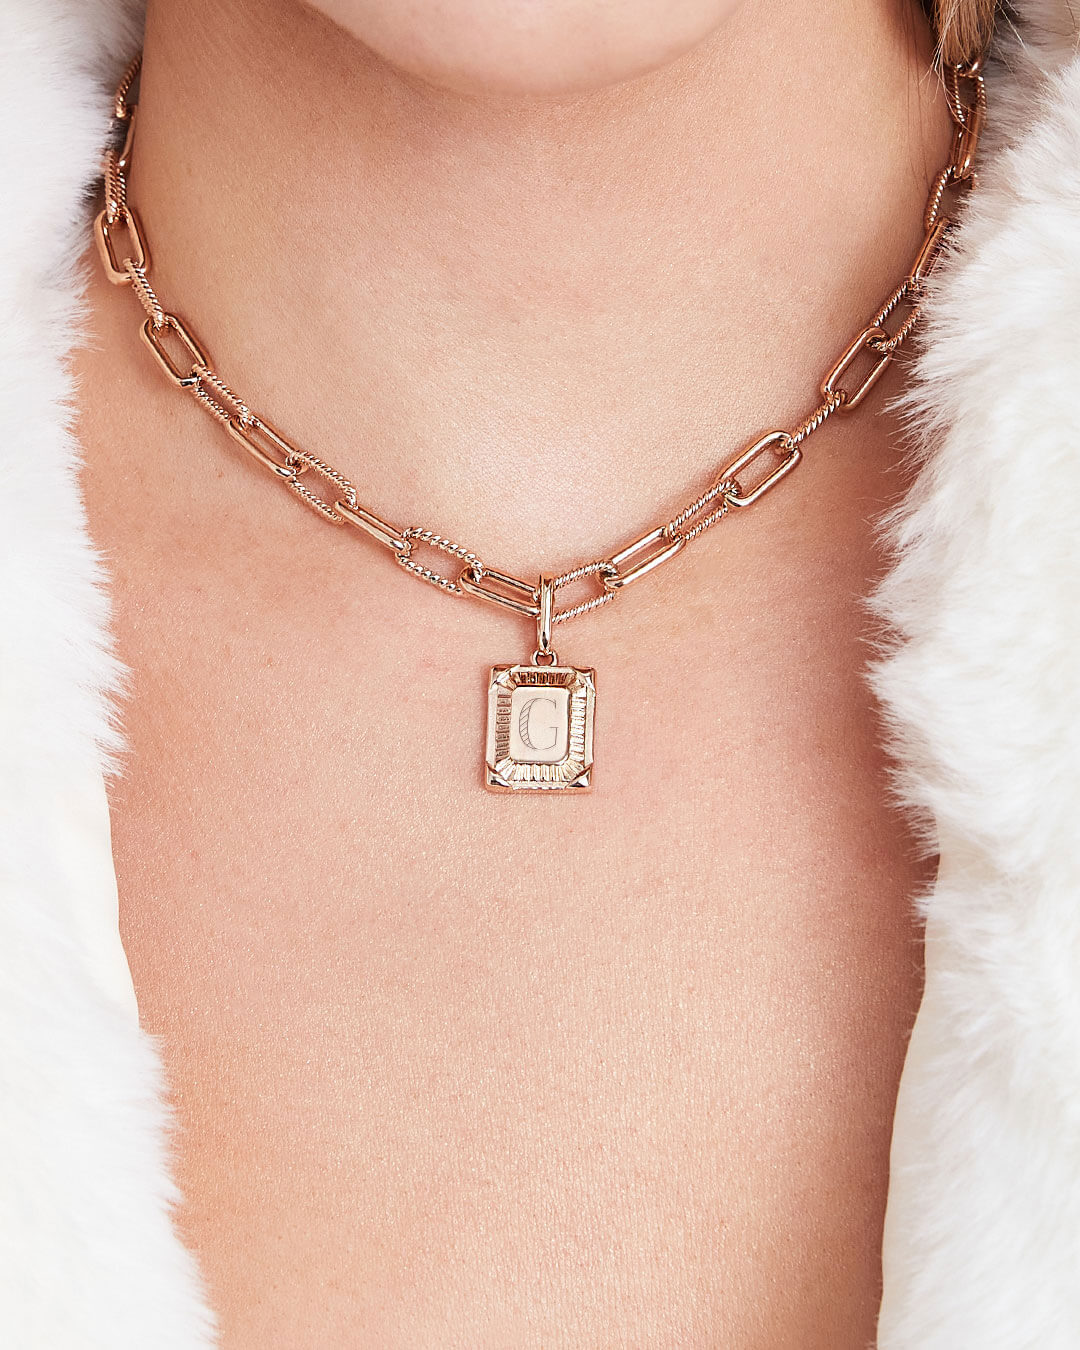 Personalise Square Link Chain Necklace (Rose Gold)